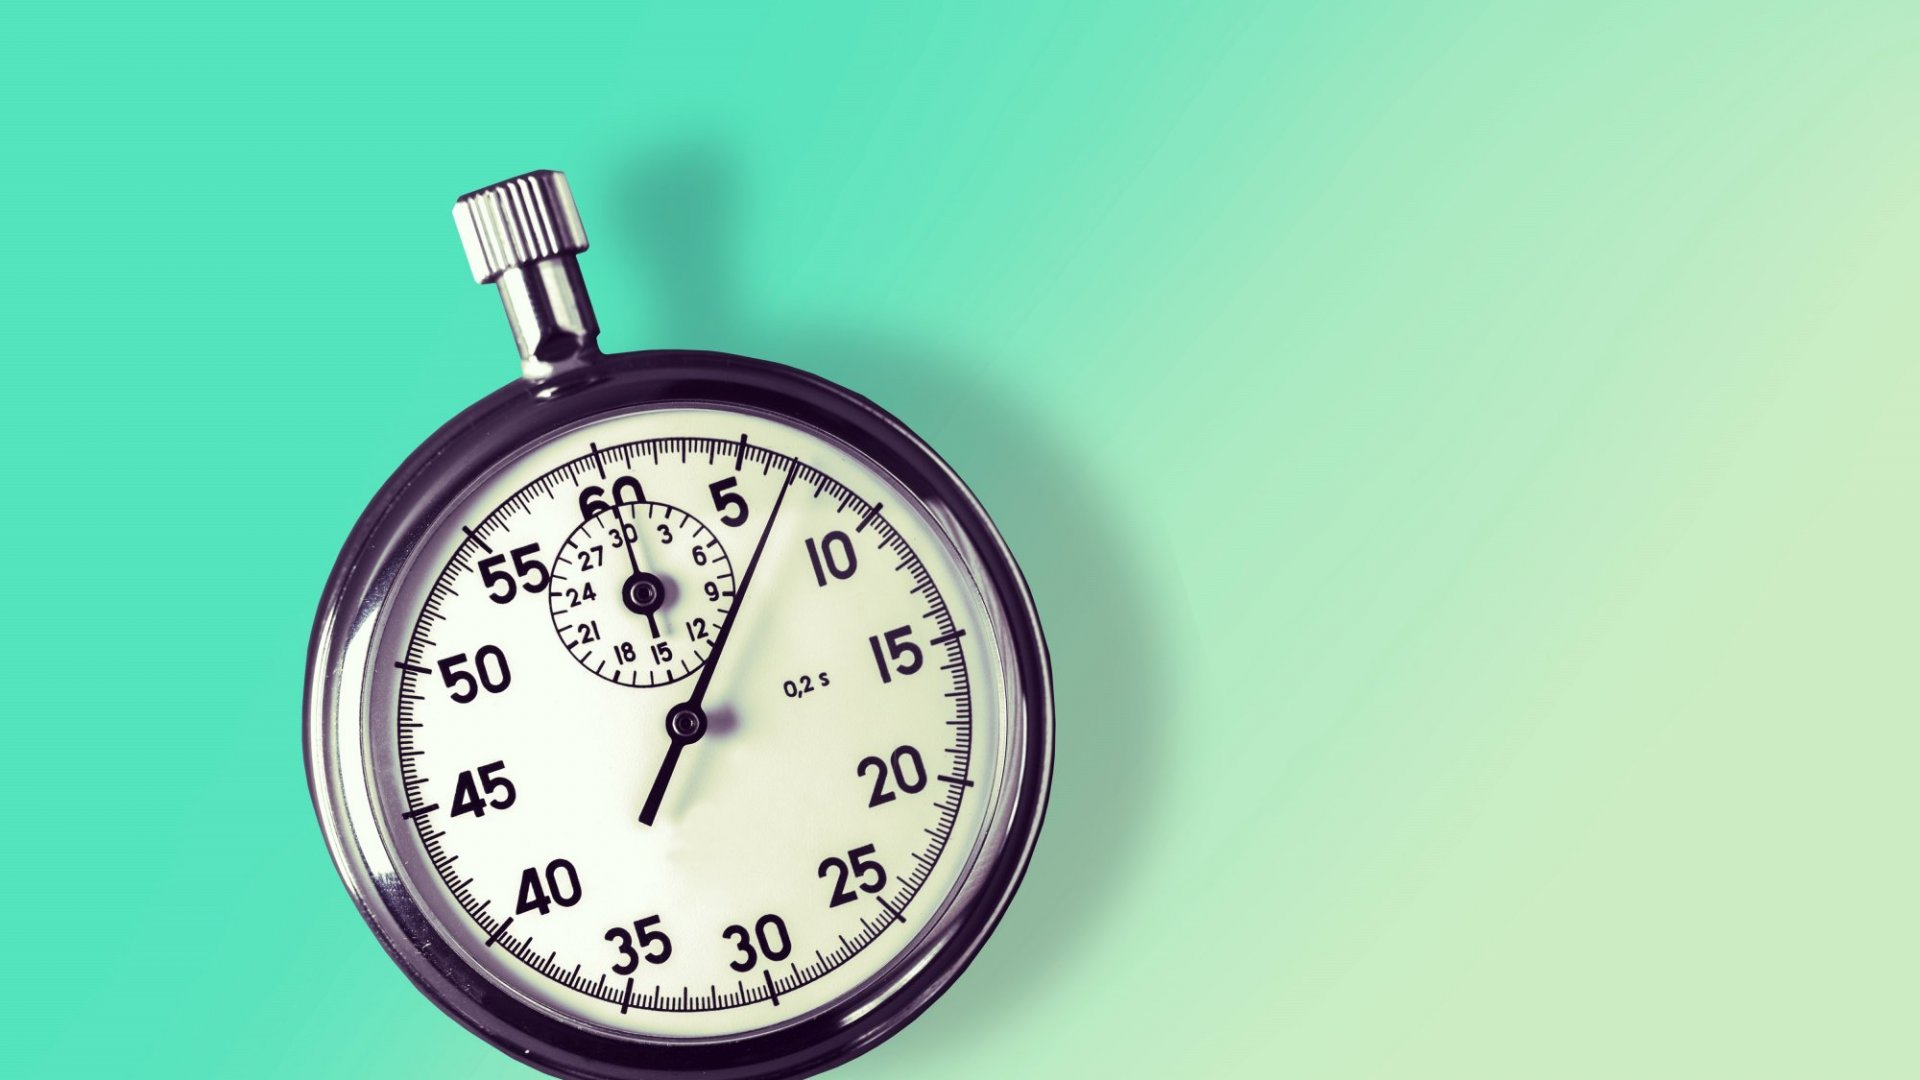 Want to Get More Done in Less Time? Science Says You Should Do These 5 Simple Things